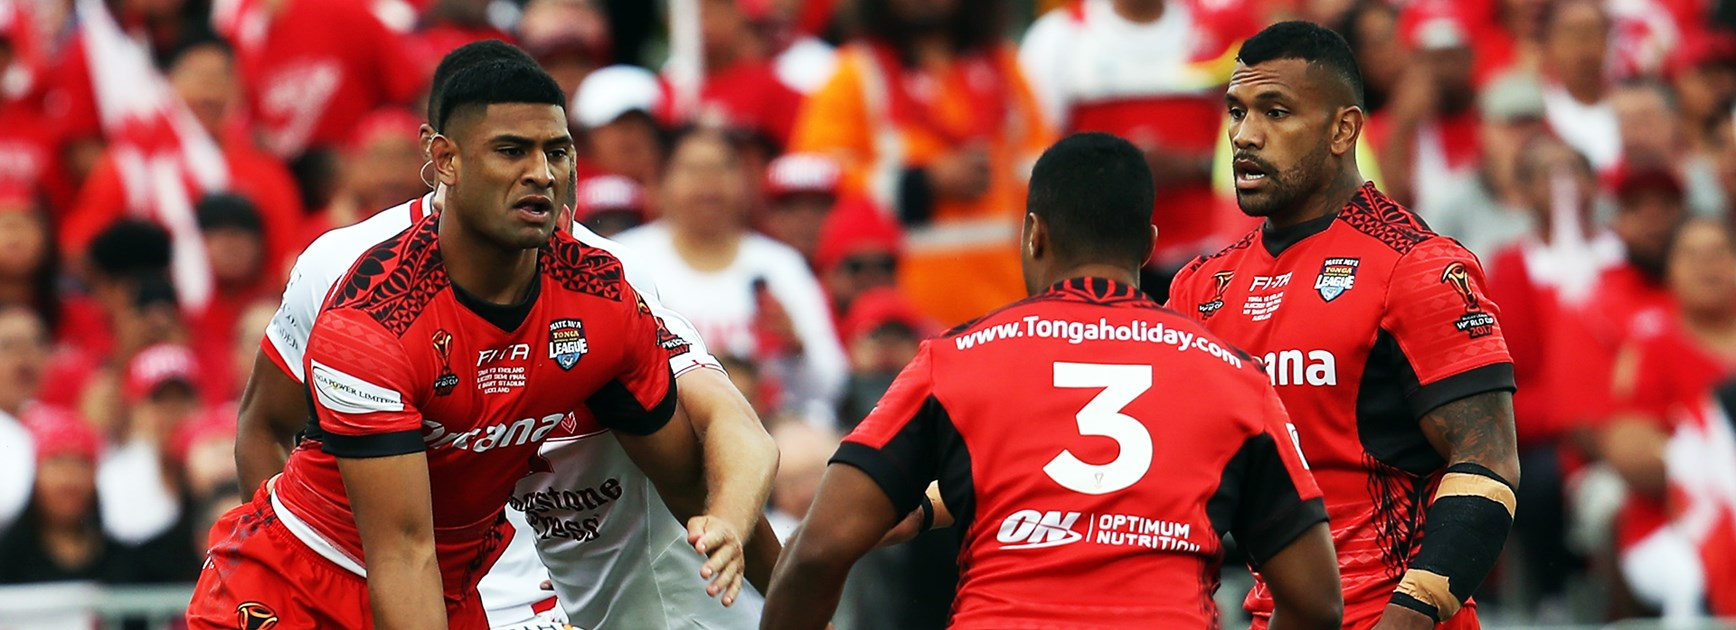 Tonga Invitational v Great Britain: Late changes for Tonga